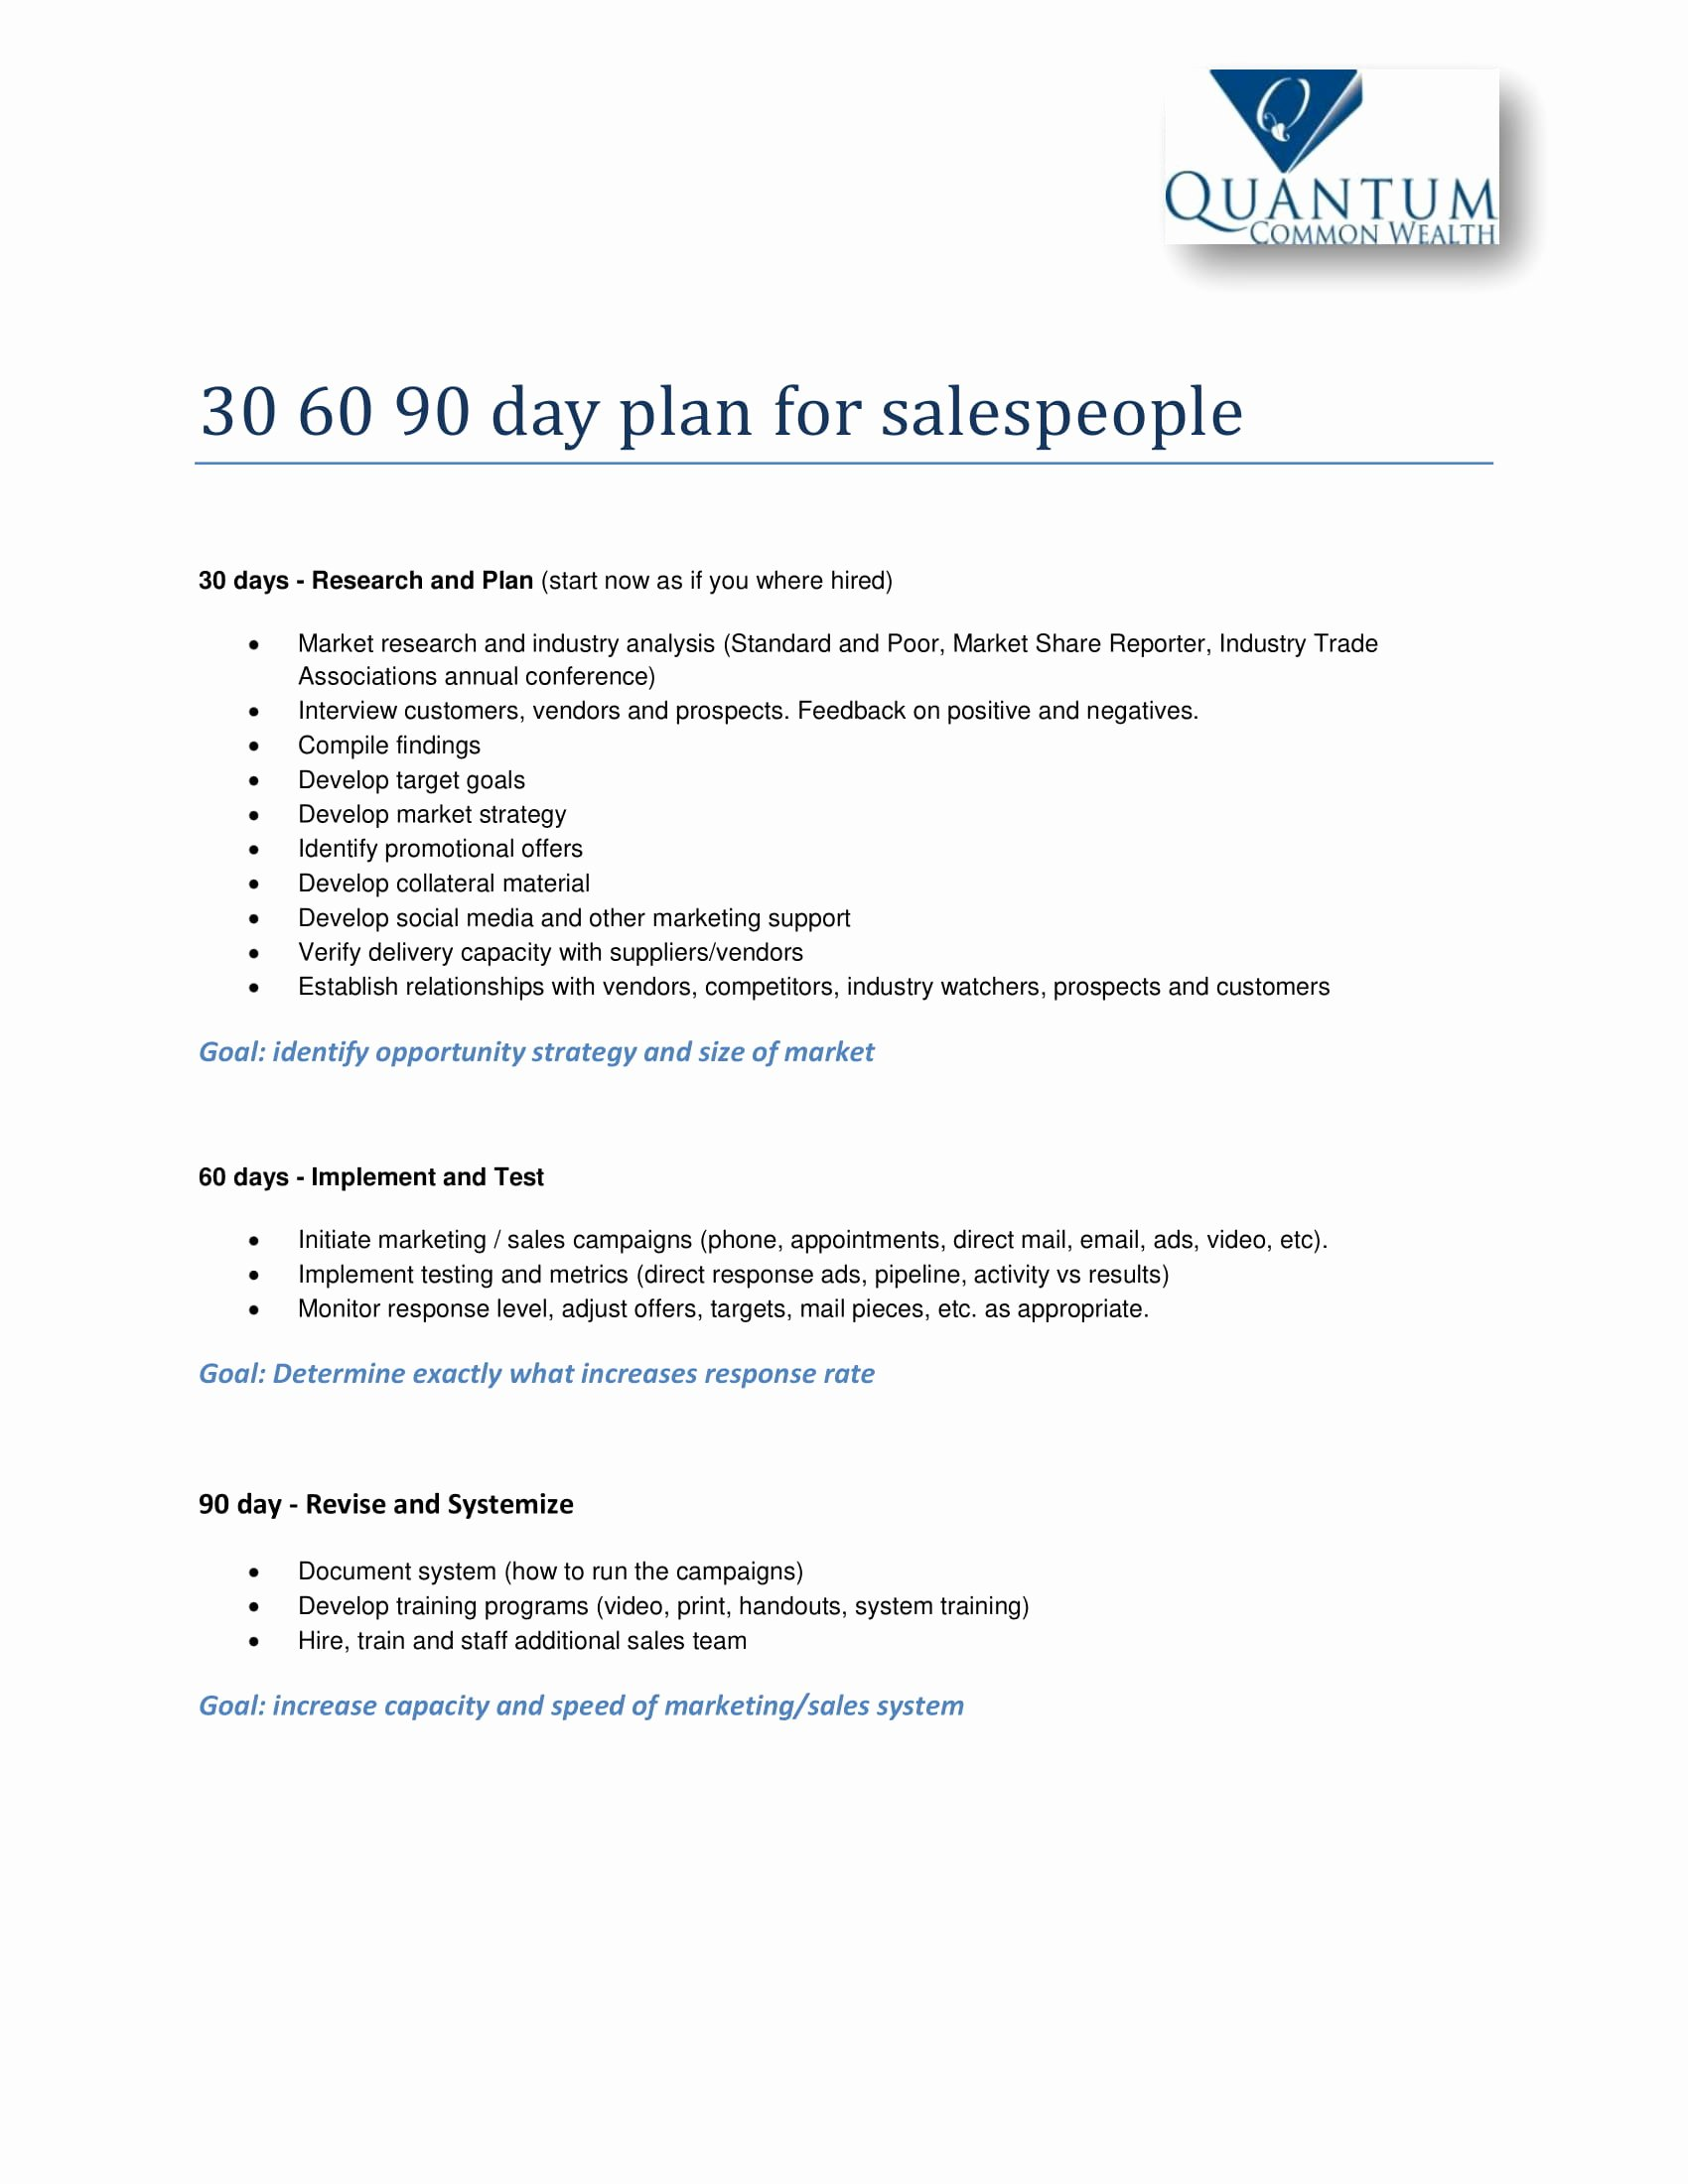 90 Day Plan Examples Lovely 12 30 60 90 Day Sales Plan Examples Pdf Word